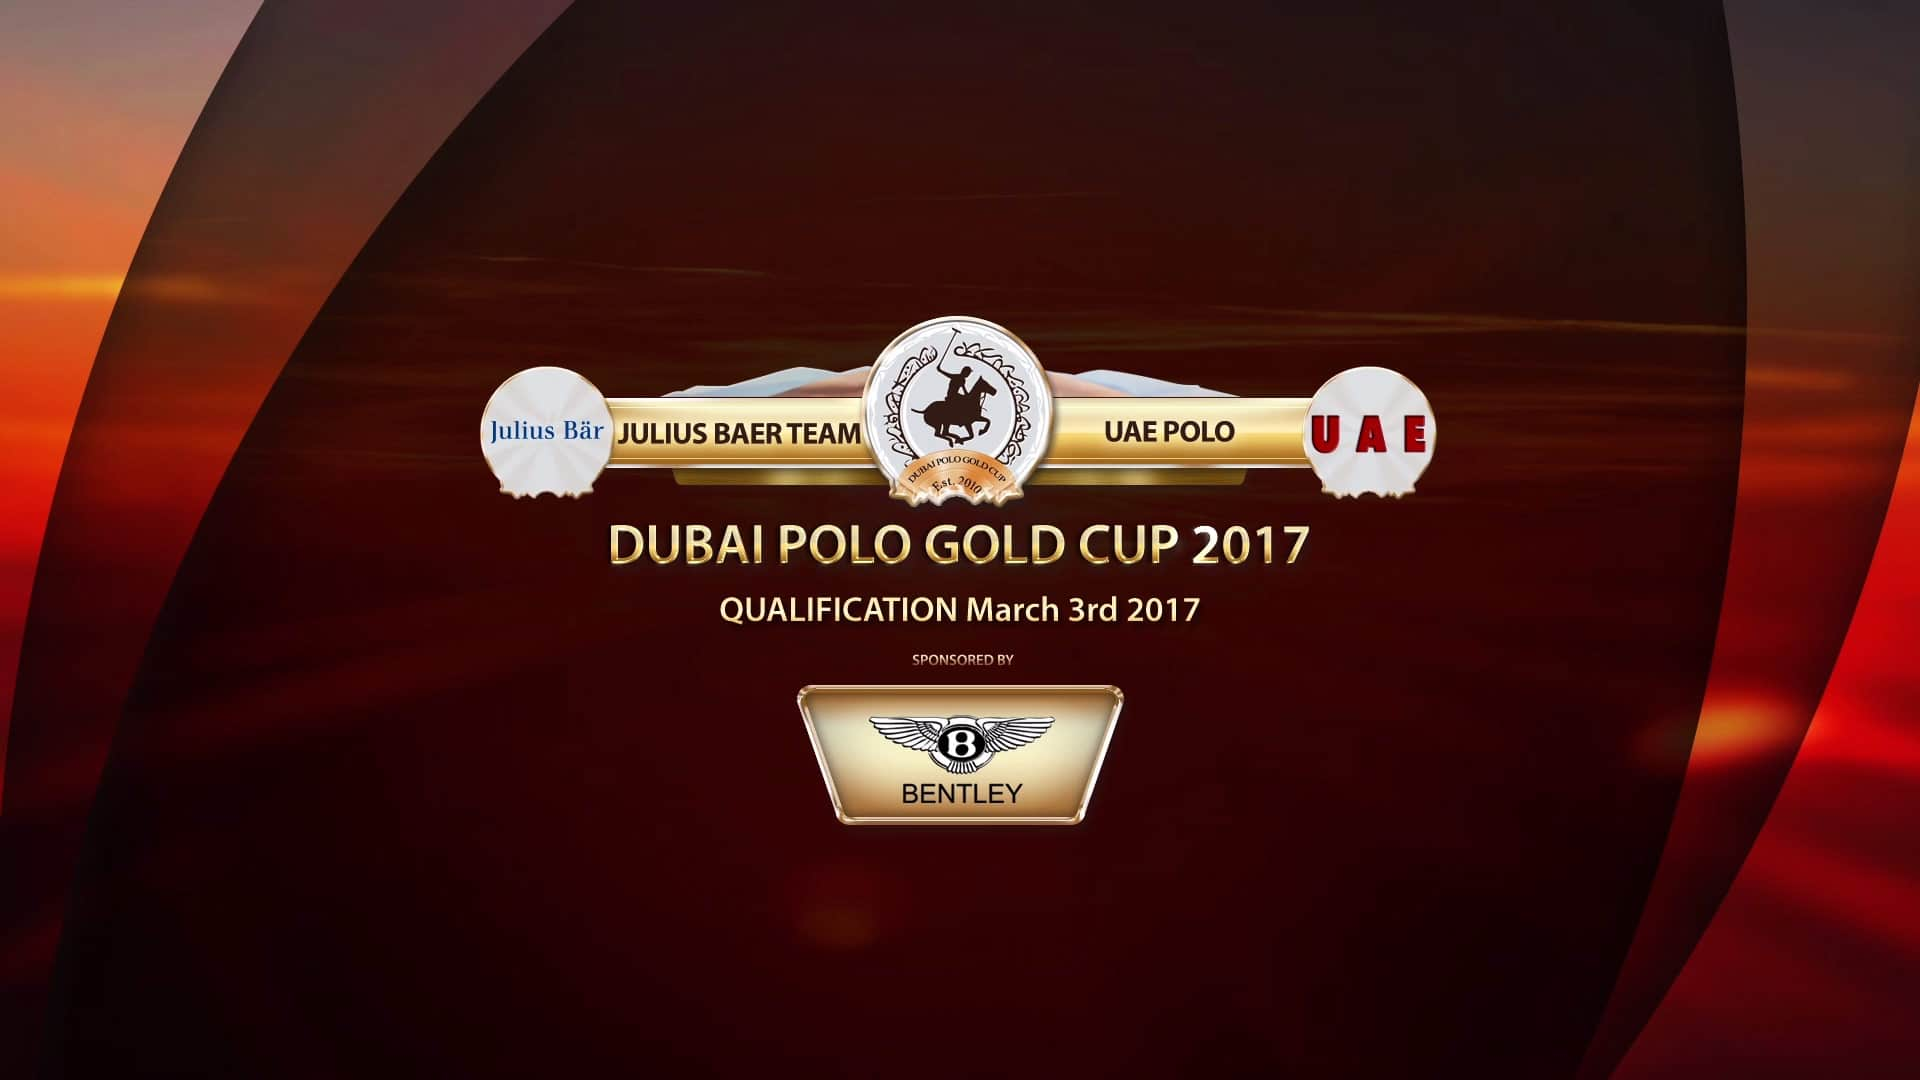 , Polo Gold Cup in Dubai Produced with Streamstar